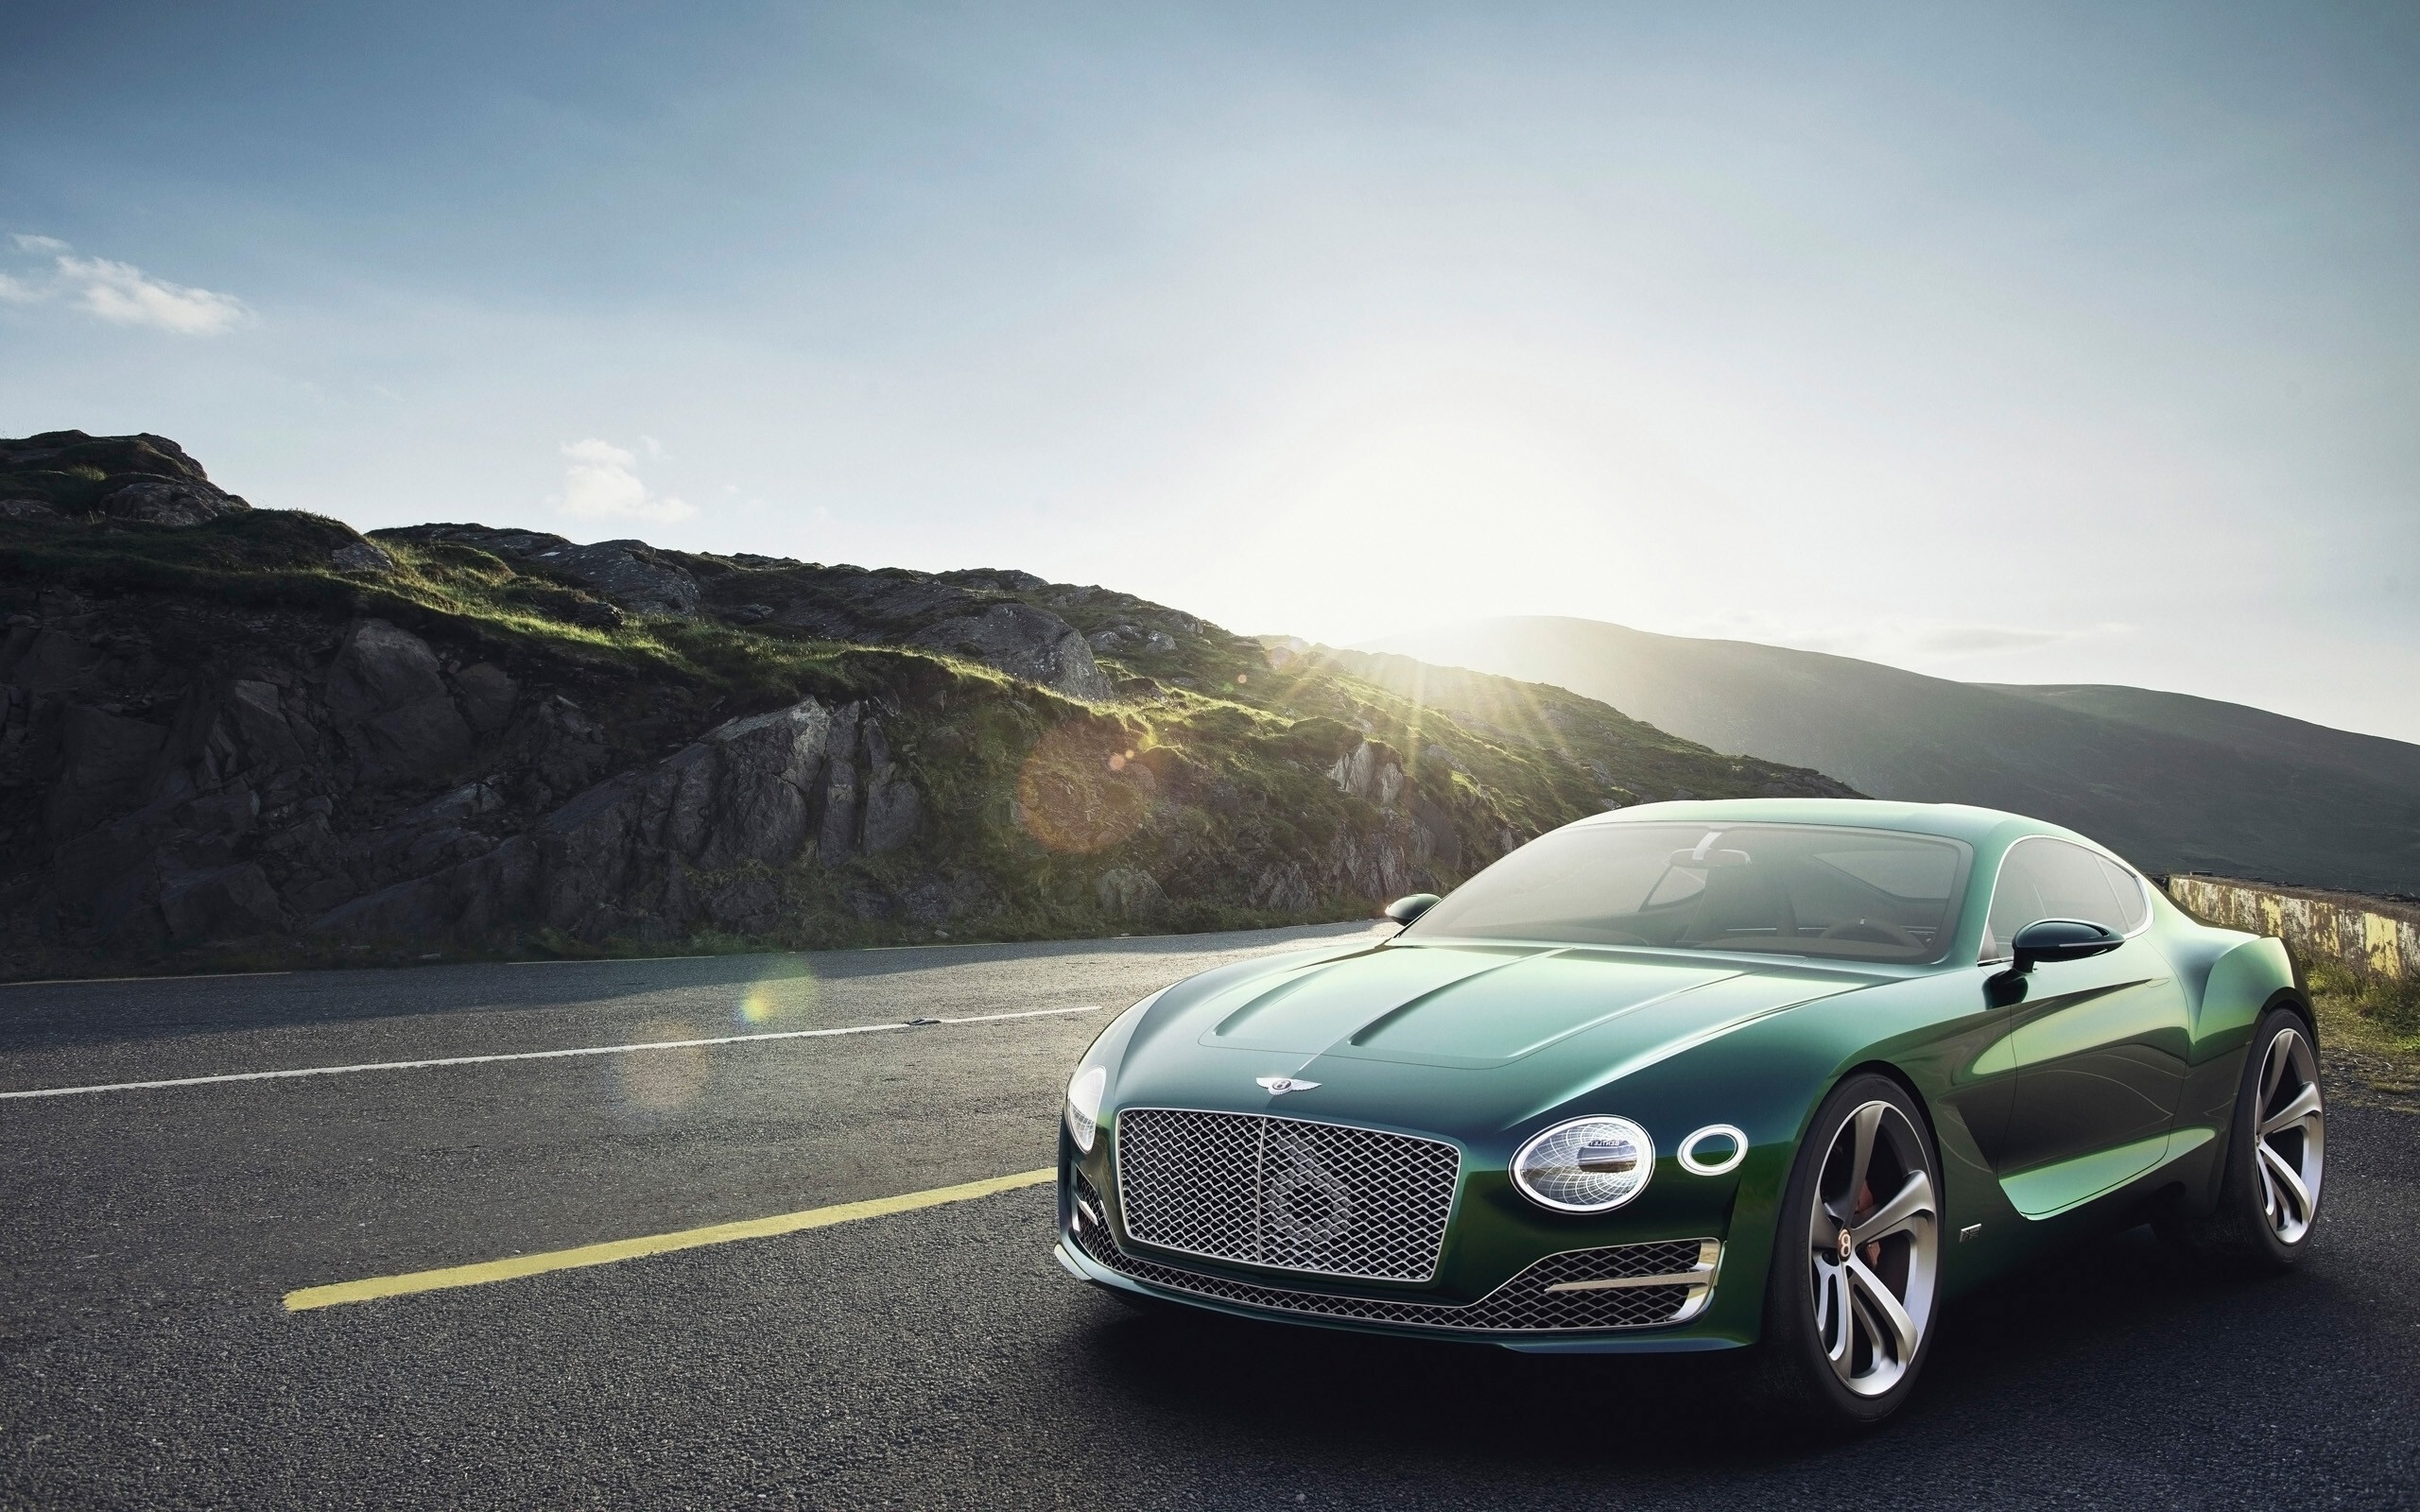 Bentley Exp 10 >> 2560x1600 Bentley Exp 10 Speed 6 2560x1600 Resolution Hd 4k